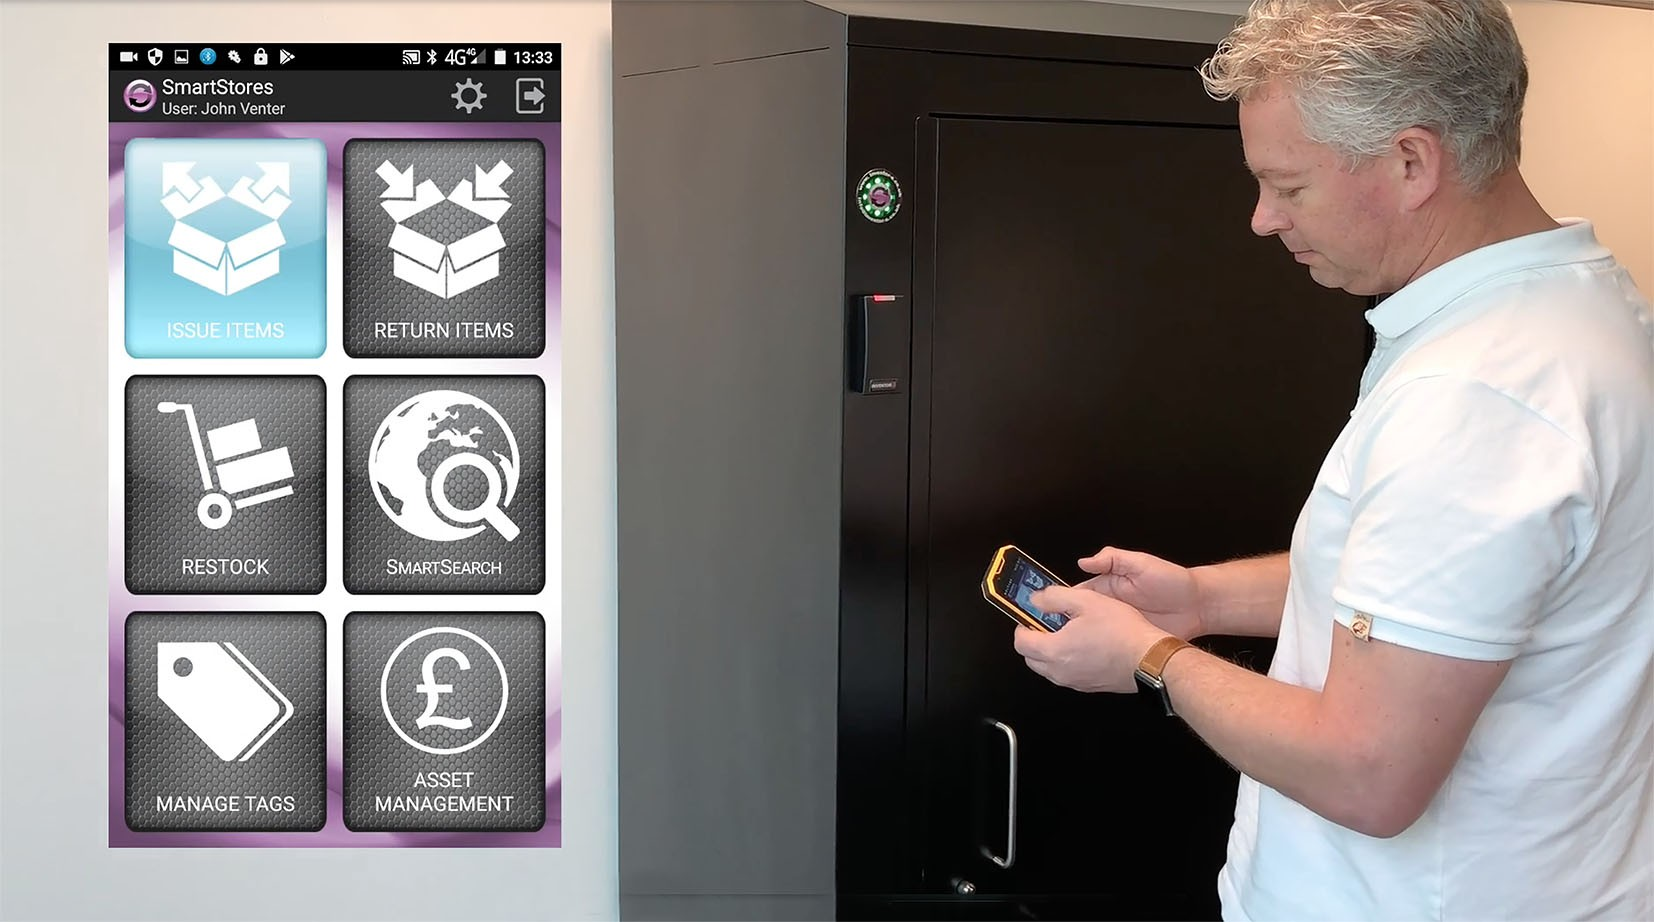 Manufacturing deal helps Inventor-e target £multi-million 'industrial vending' opportunity » SmartStore Secure L » PP Control & Automation